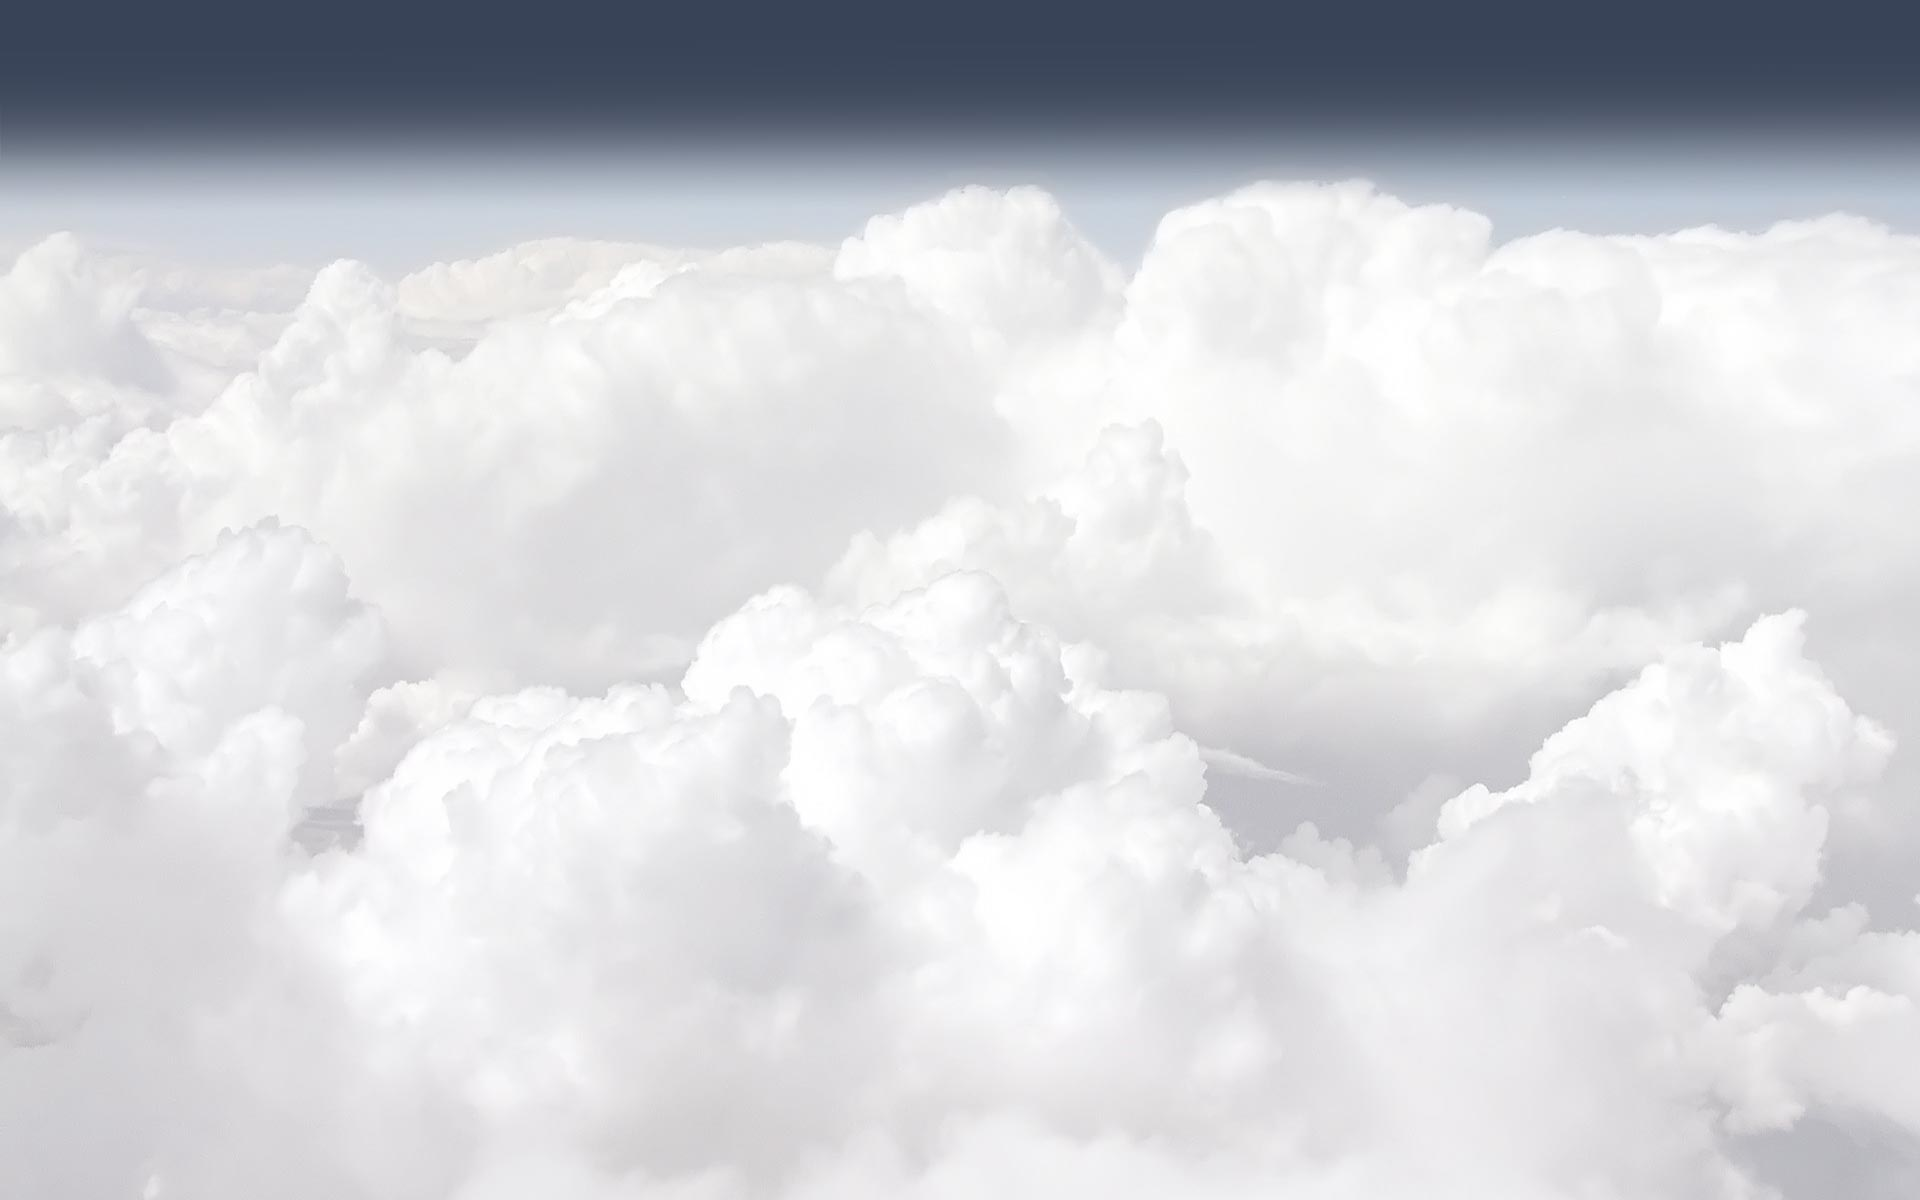 cloudsbackground.jpg